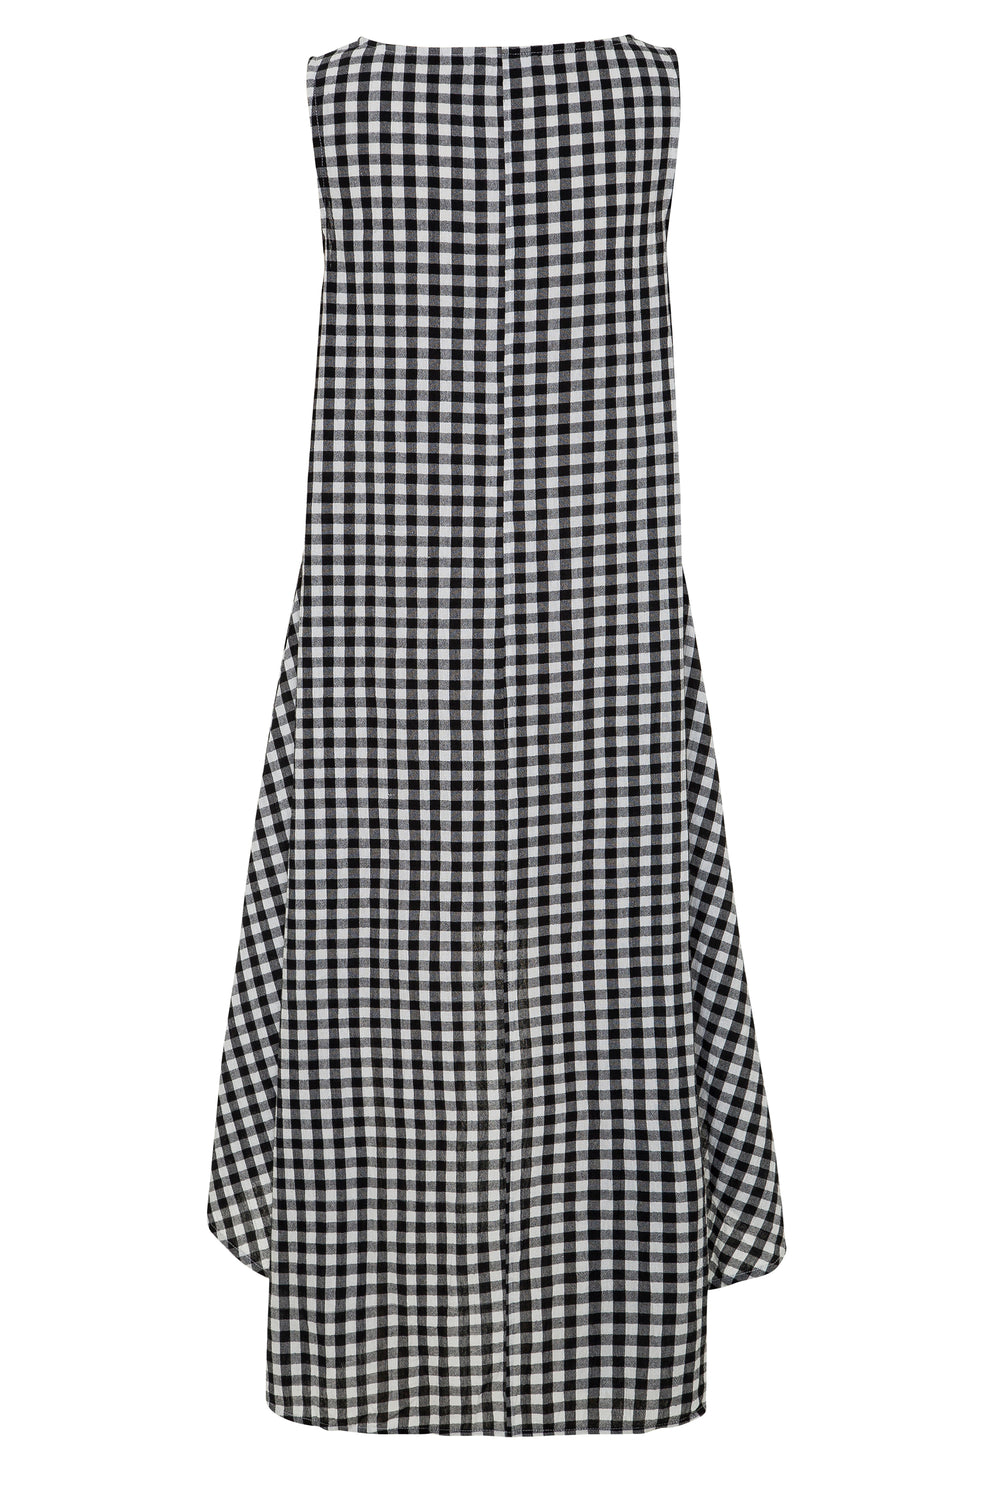 Mia Dress In Black Gingham